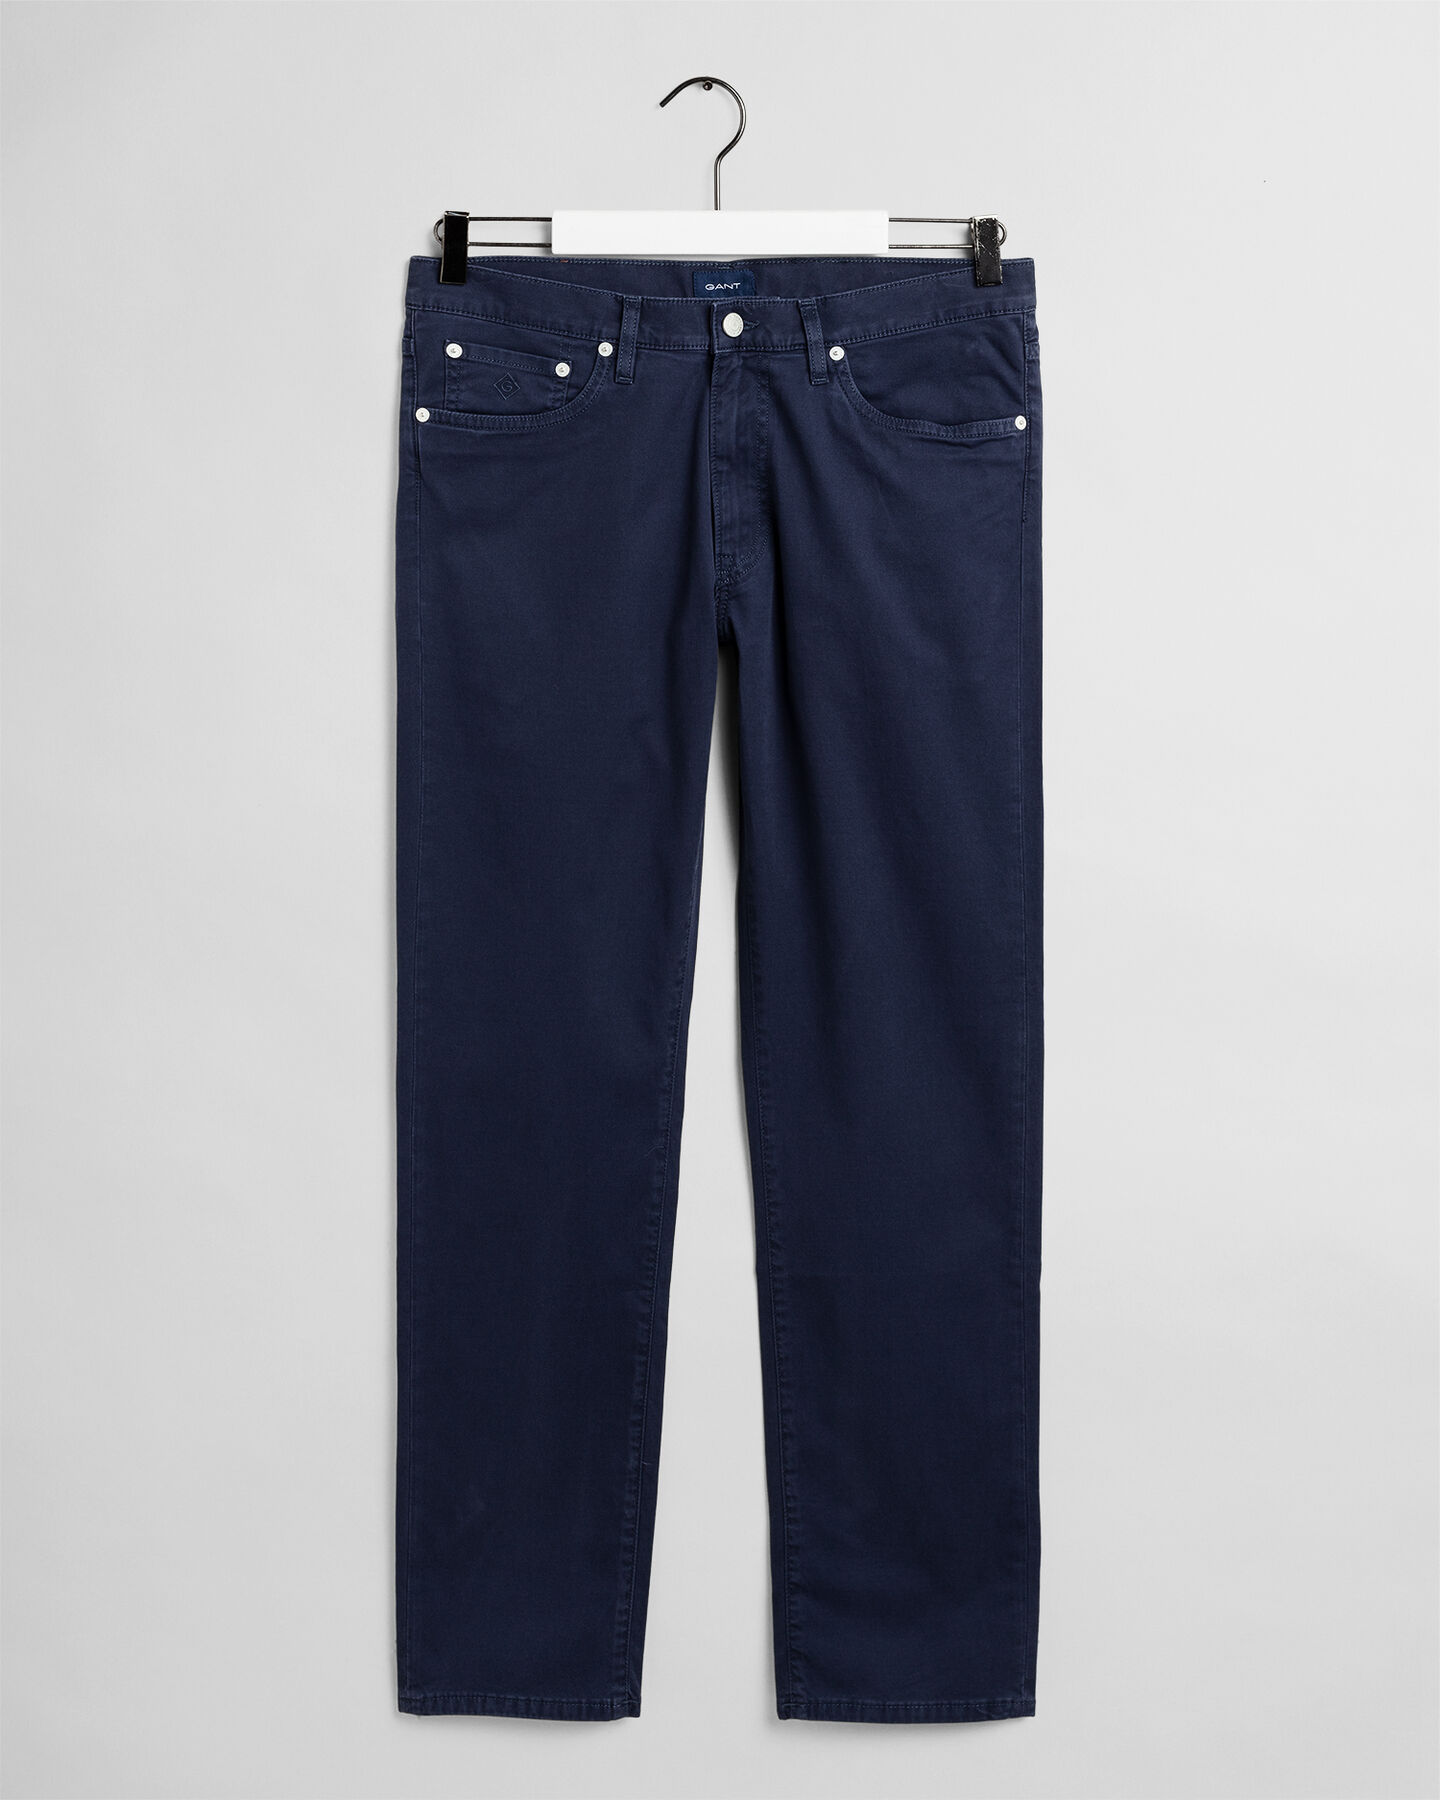 Dusty Slim Fit Twill Jeans